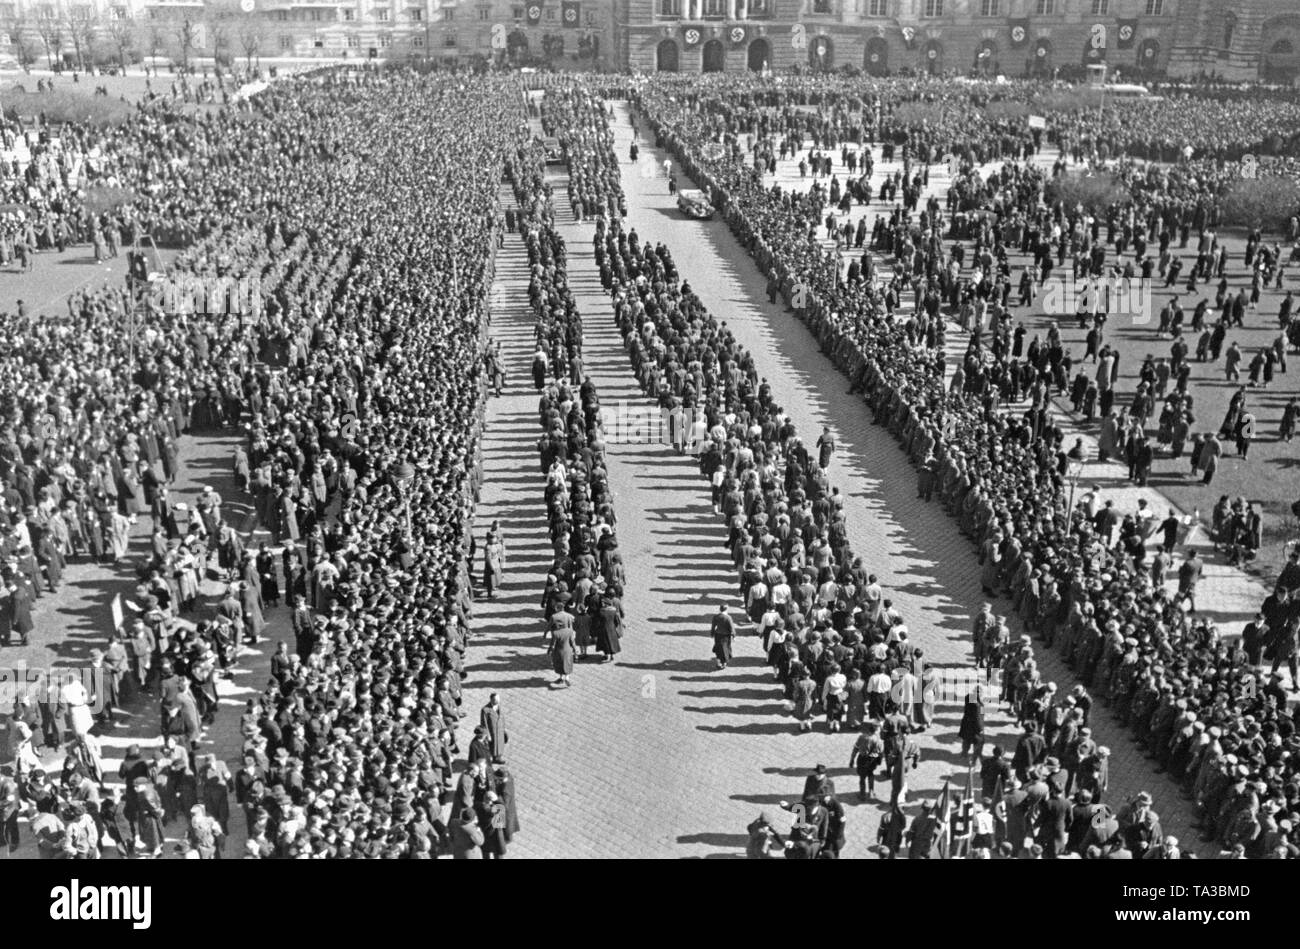 Celebrations marking the annexation of Austria to the German Reich on the Heldenplatz in Vienna. - Stock Image